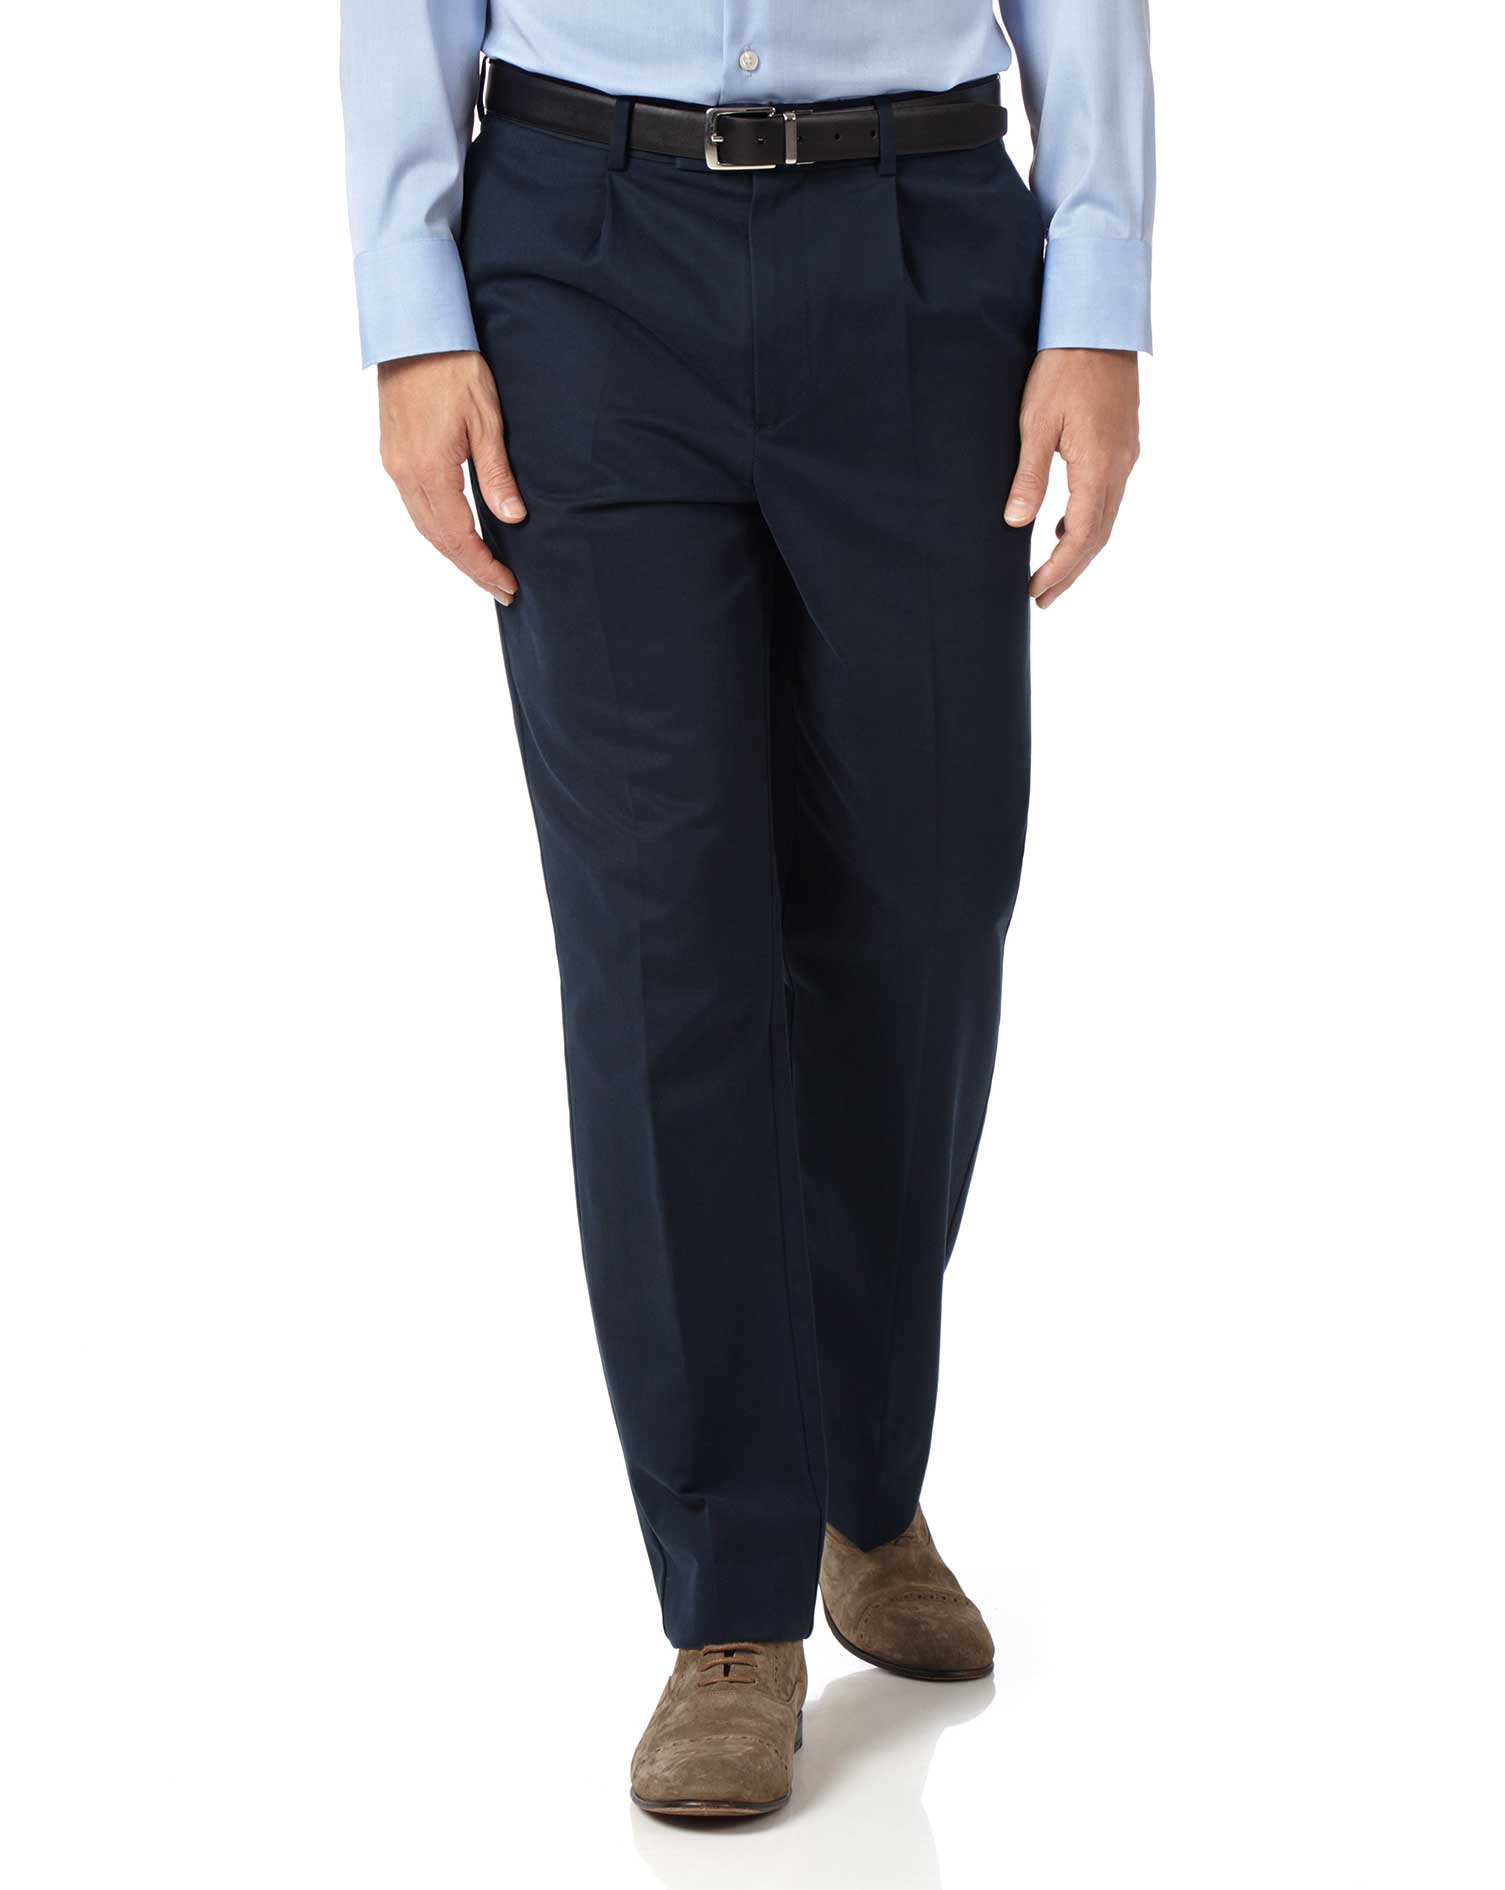 Navy Classic Fit Single Pleat Non-Iron Cotton Chino Trousers Size W36 L30 by Charles Tyrwhitt